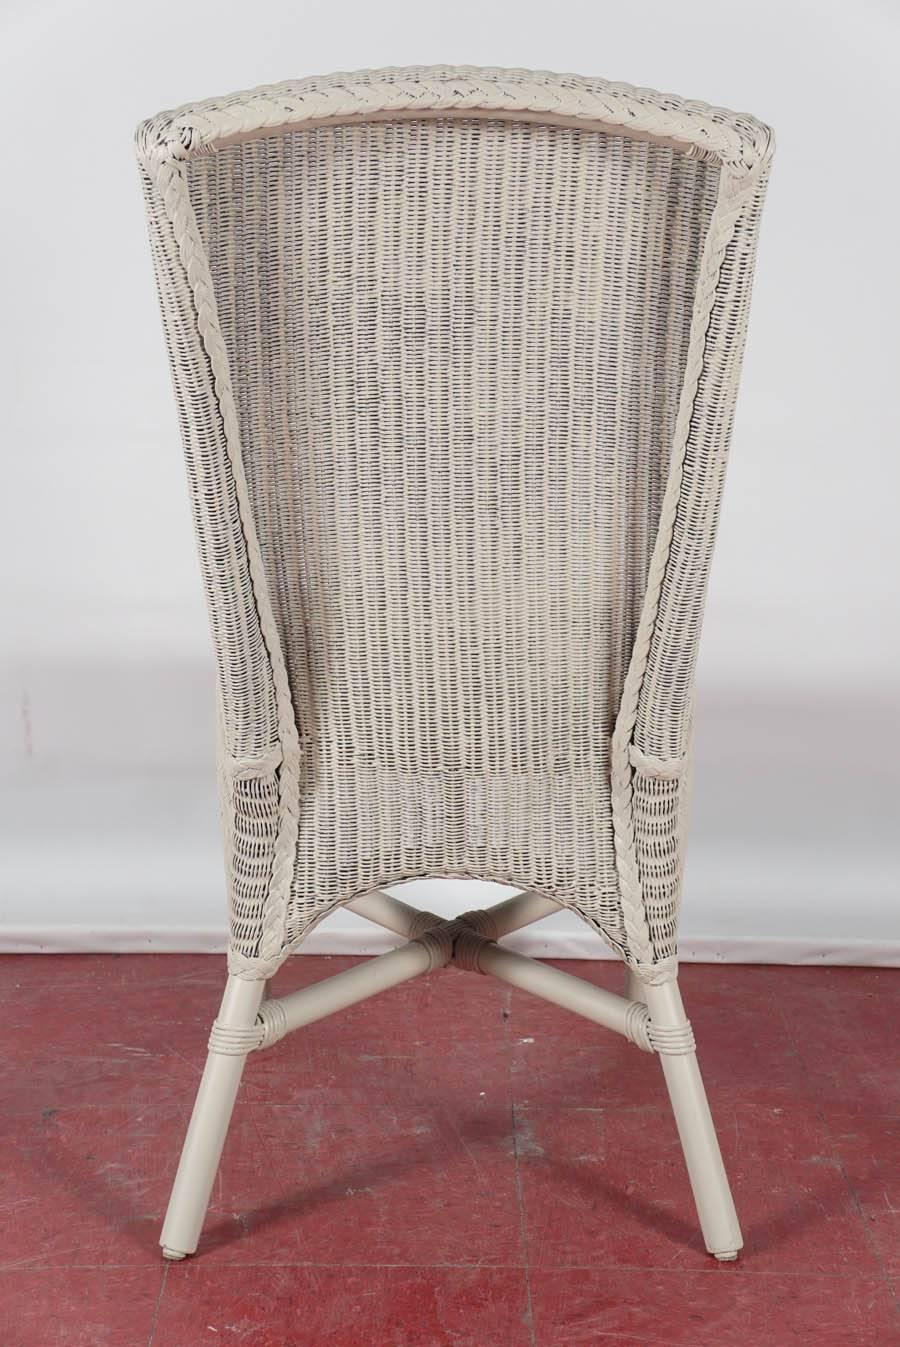 Six Vintage Lloyd Loom Wicker Dining Chairs For Sale at